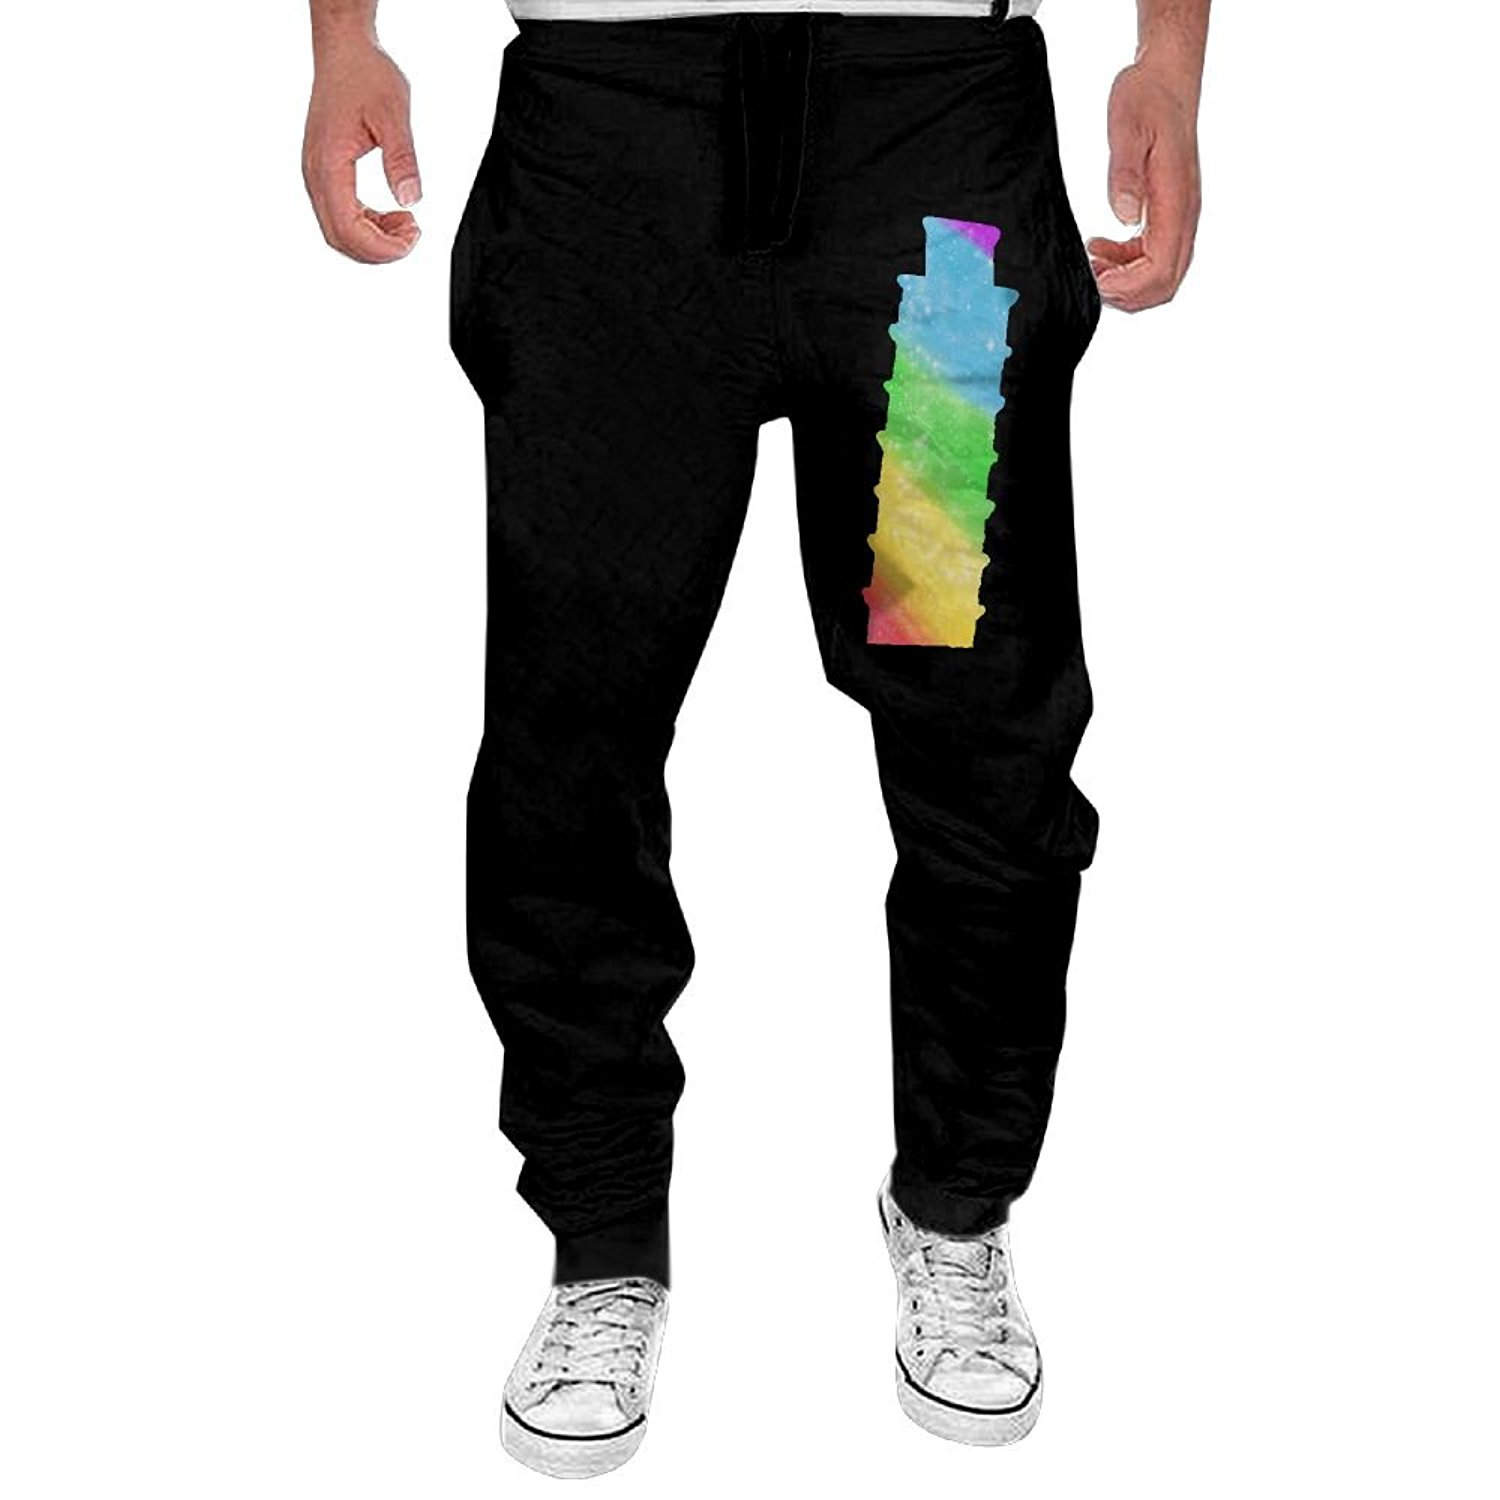 1500x1500 Leaning Tower Of Pisa Italy Men's Active Basic Fitness Sweatpants